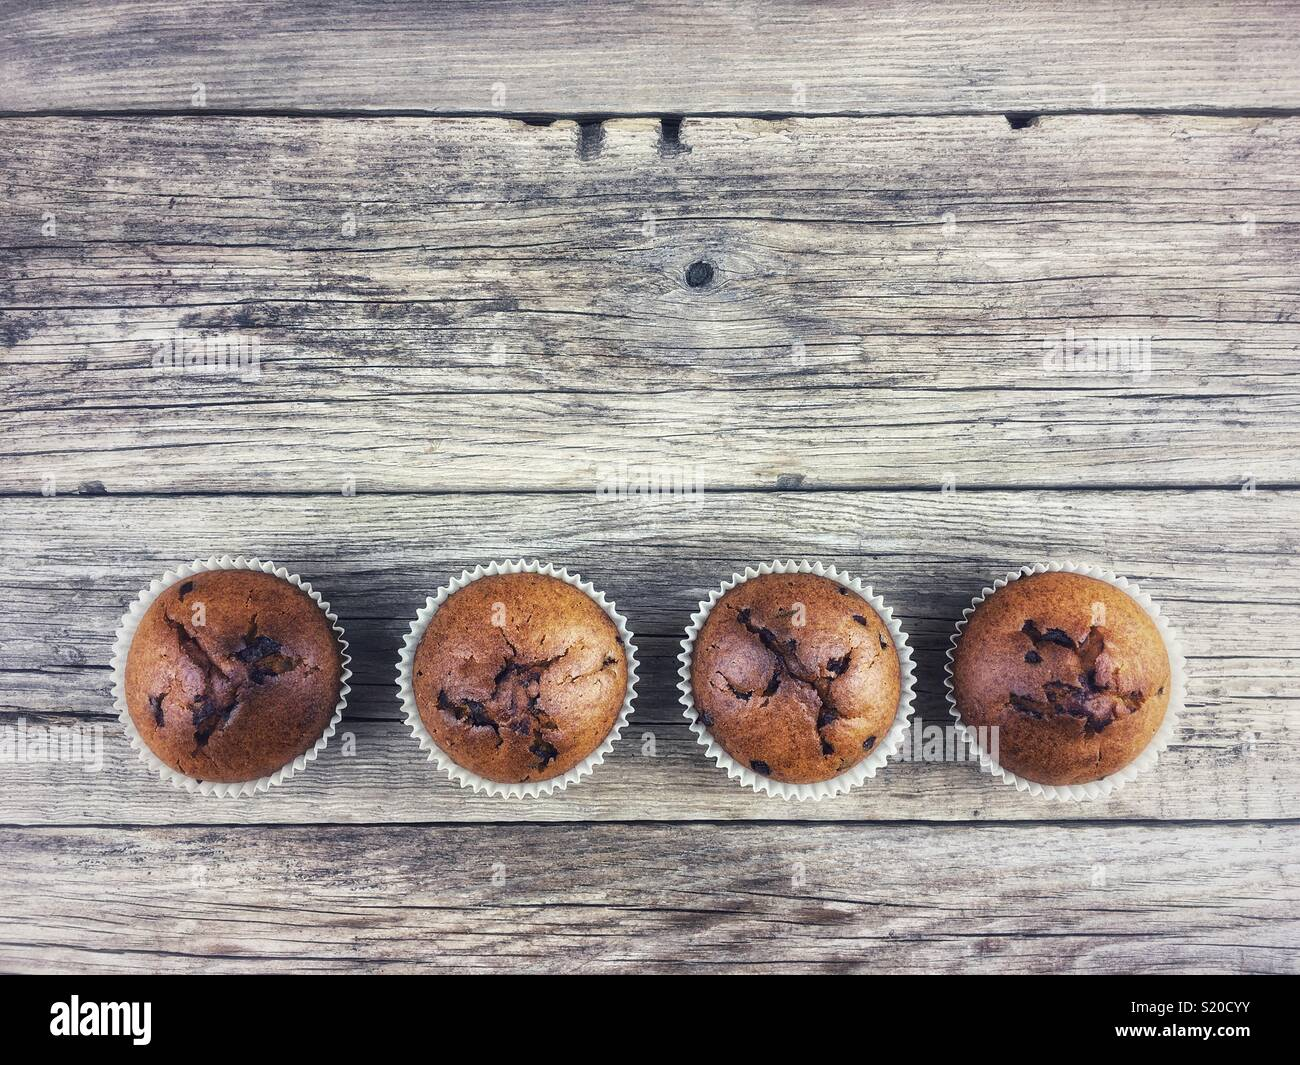 Top view of Chocolate muffins on a wooden table Stock Photo